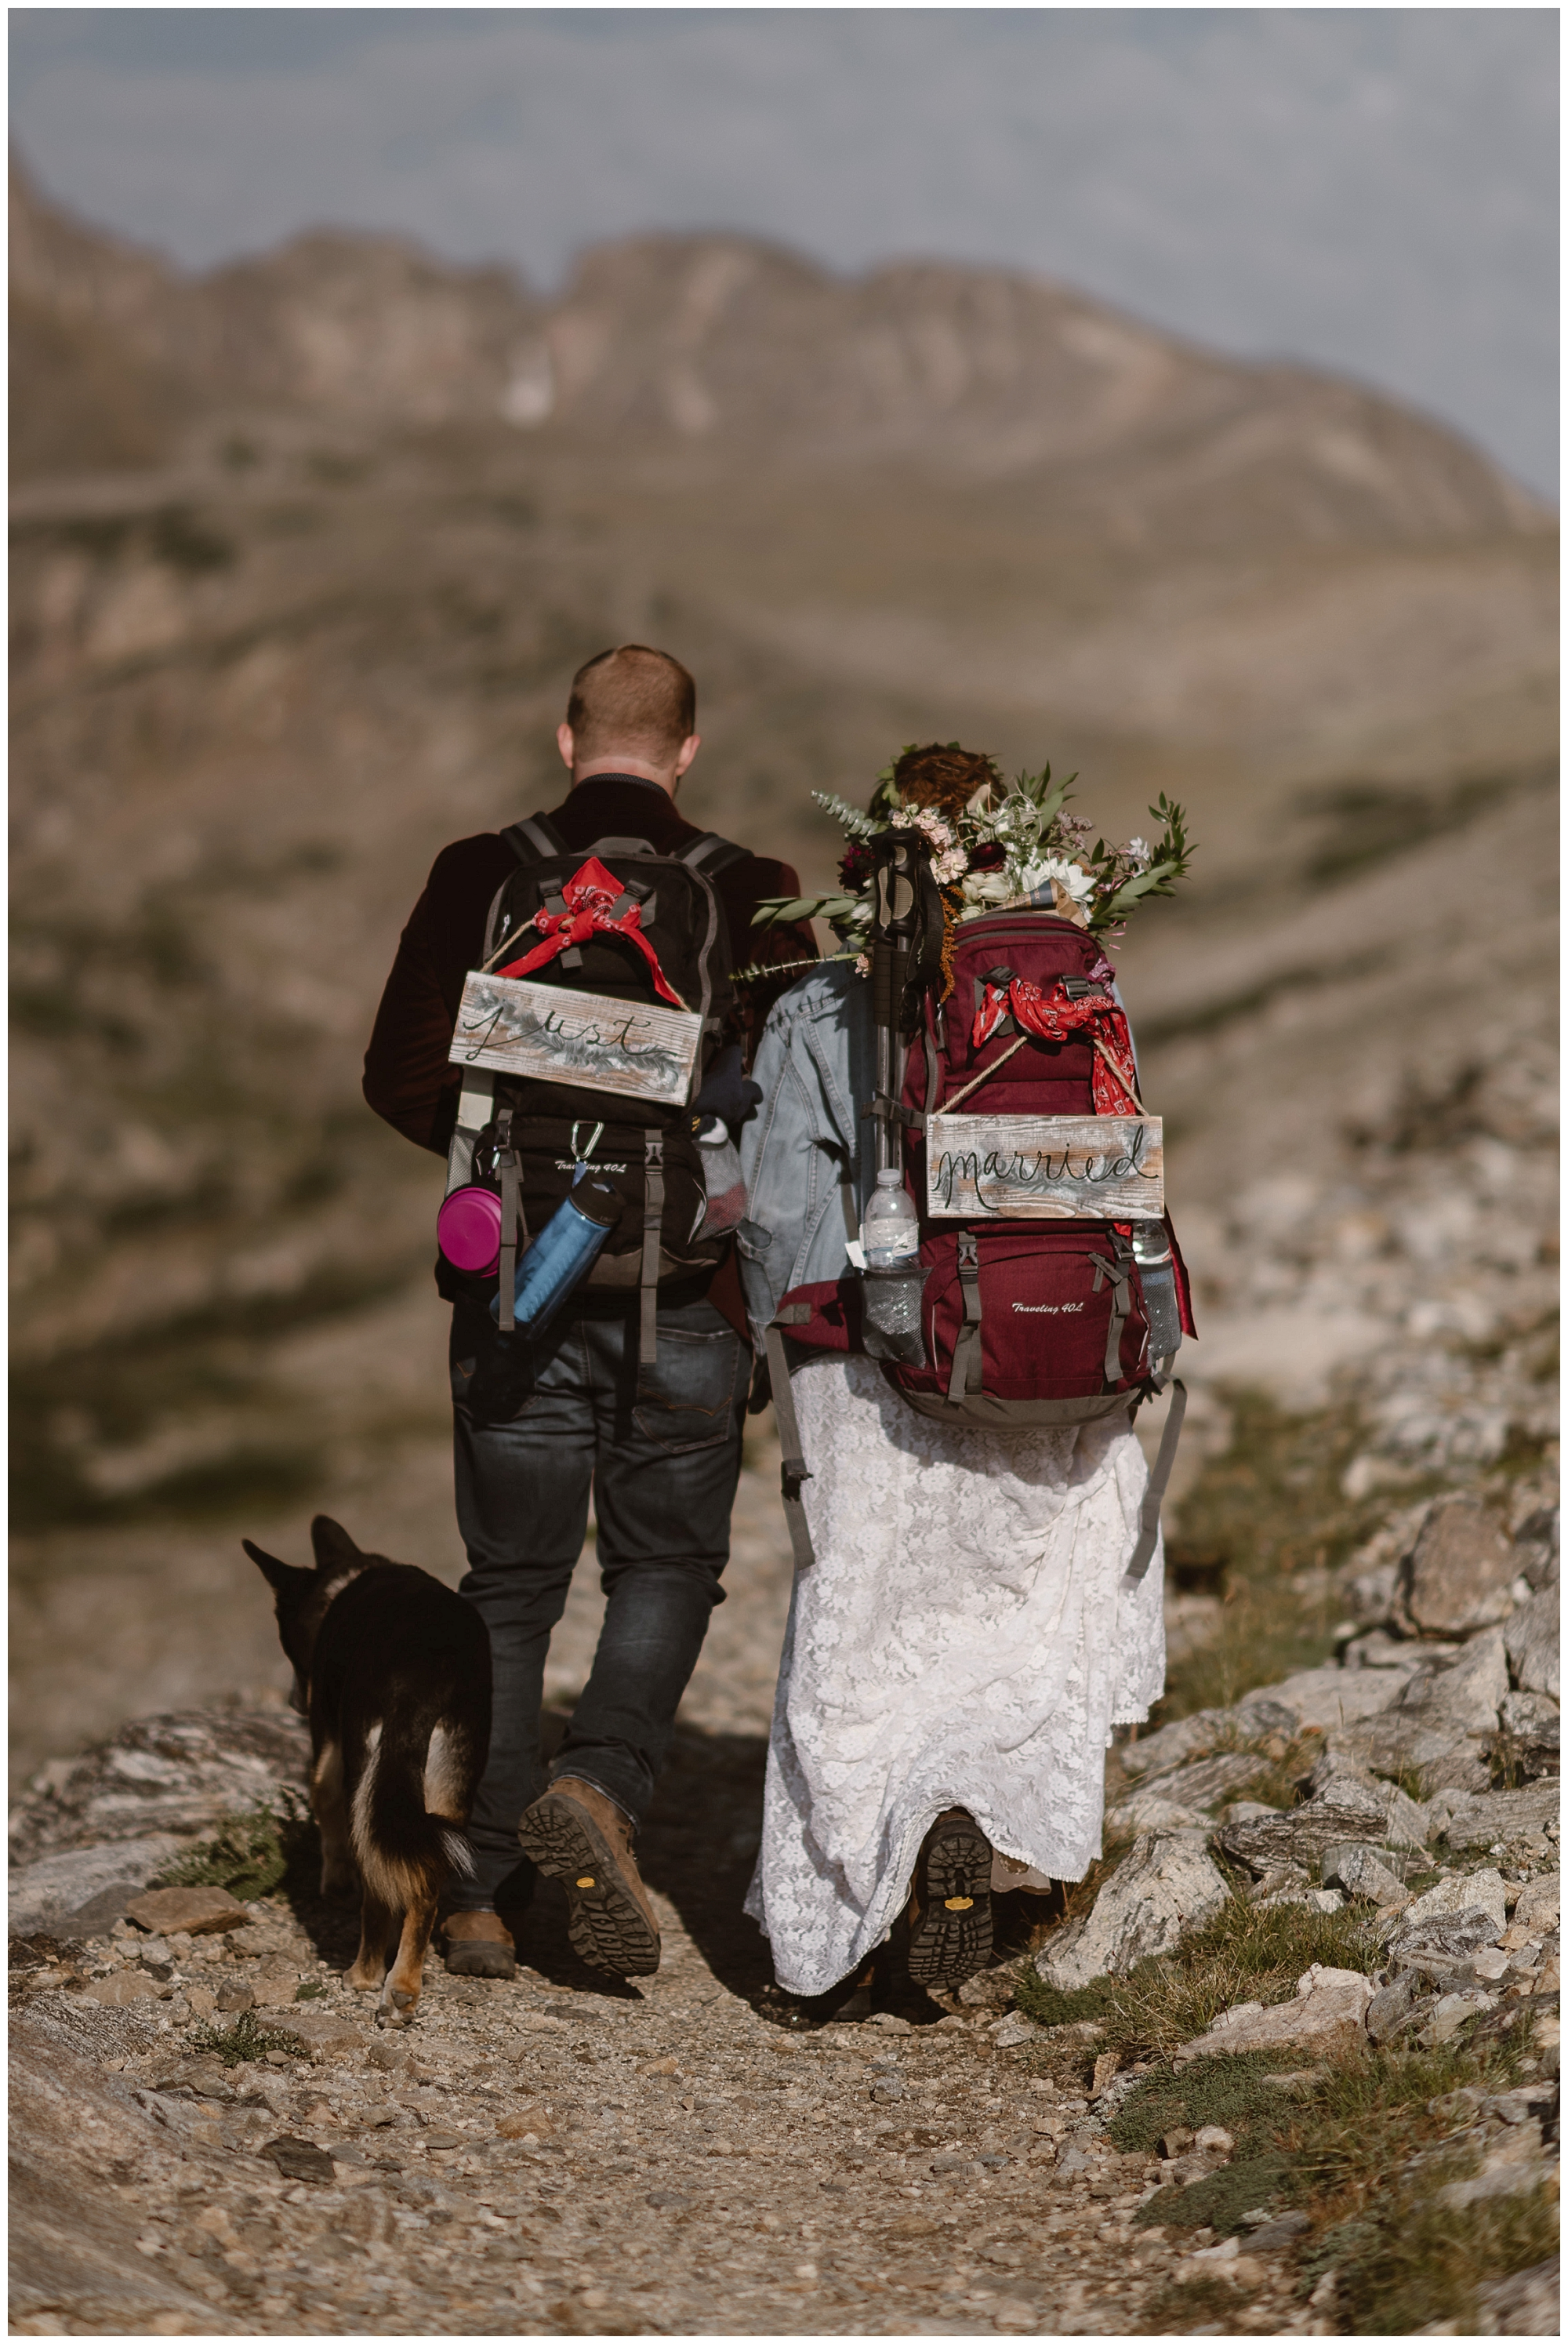 To hike on your elopement day, plan to carry your wedding clothes up and hike down in them. Furry friend and cute customized 'Just Married' signs attached to your hiking backpacks not required. Where you elope and how you say your vows matters! Photo by Maddie Mae, Adventure Instead Elopement Photographers.